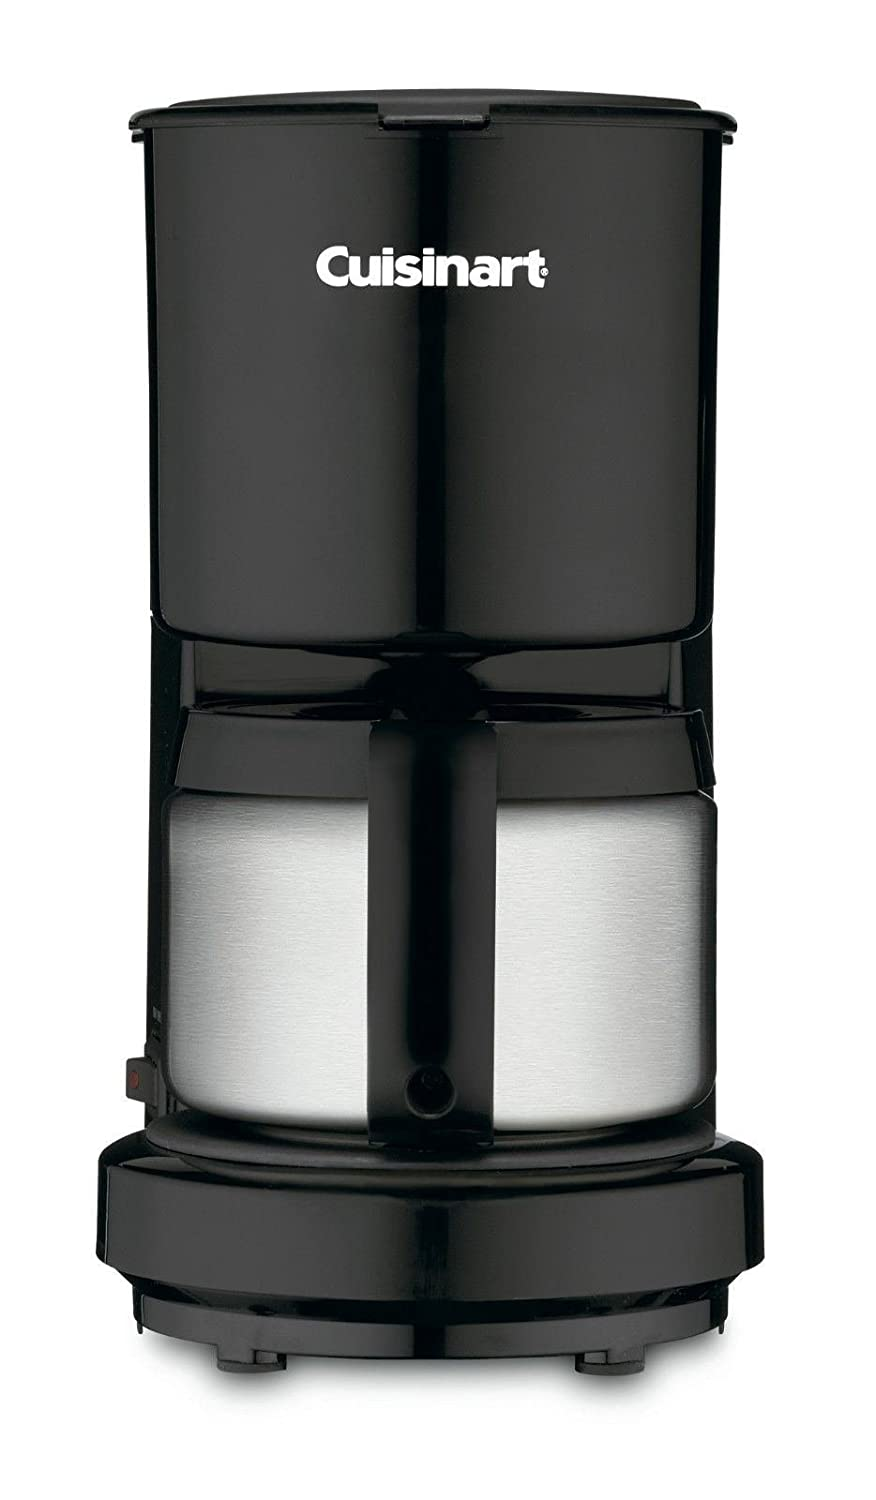 New Cuisinart Dcc-450bk Coffee Maker with Carafe *